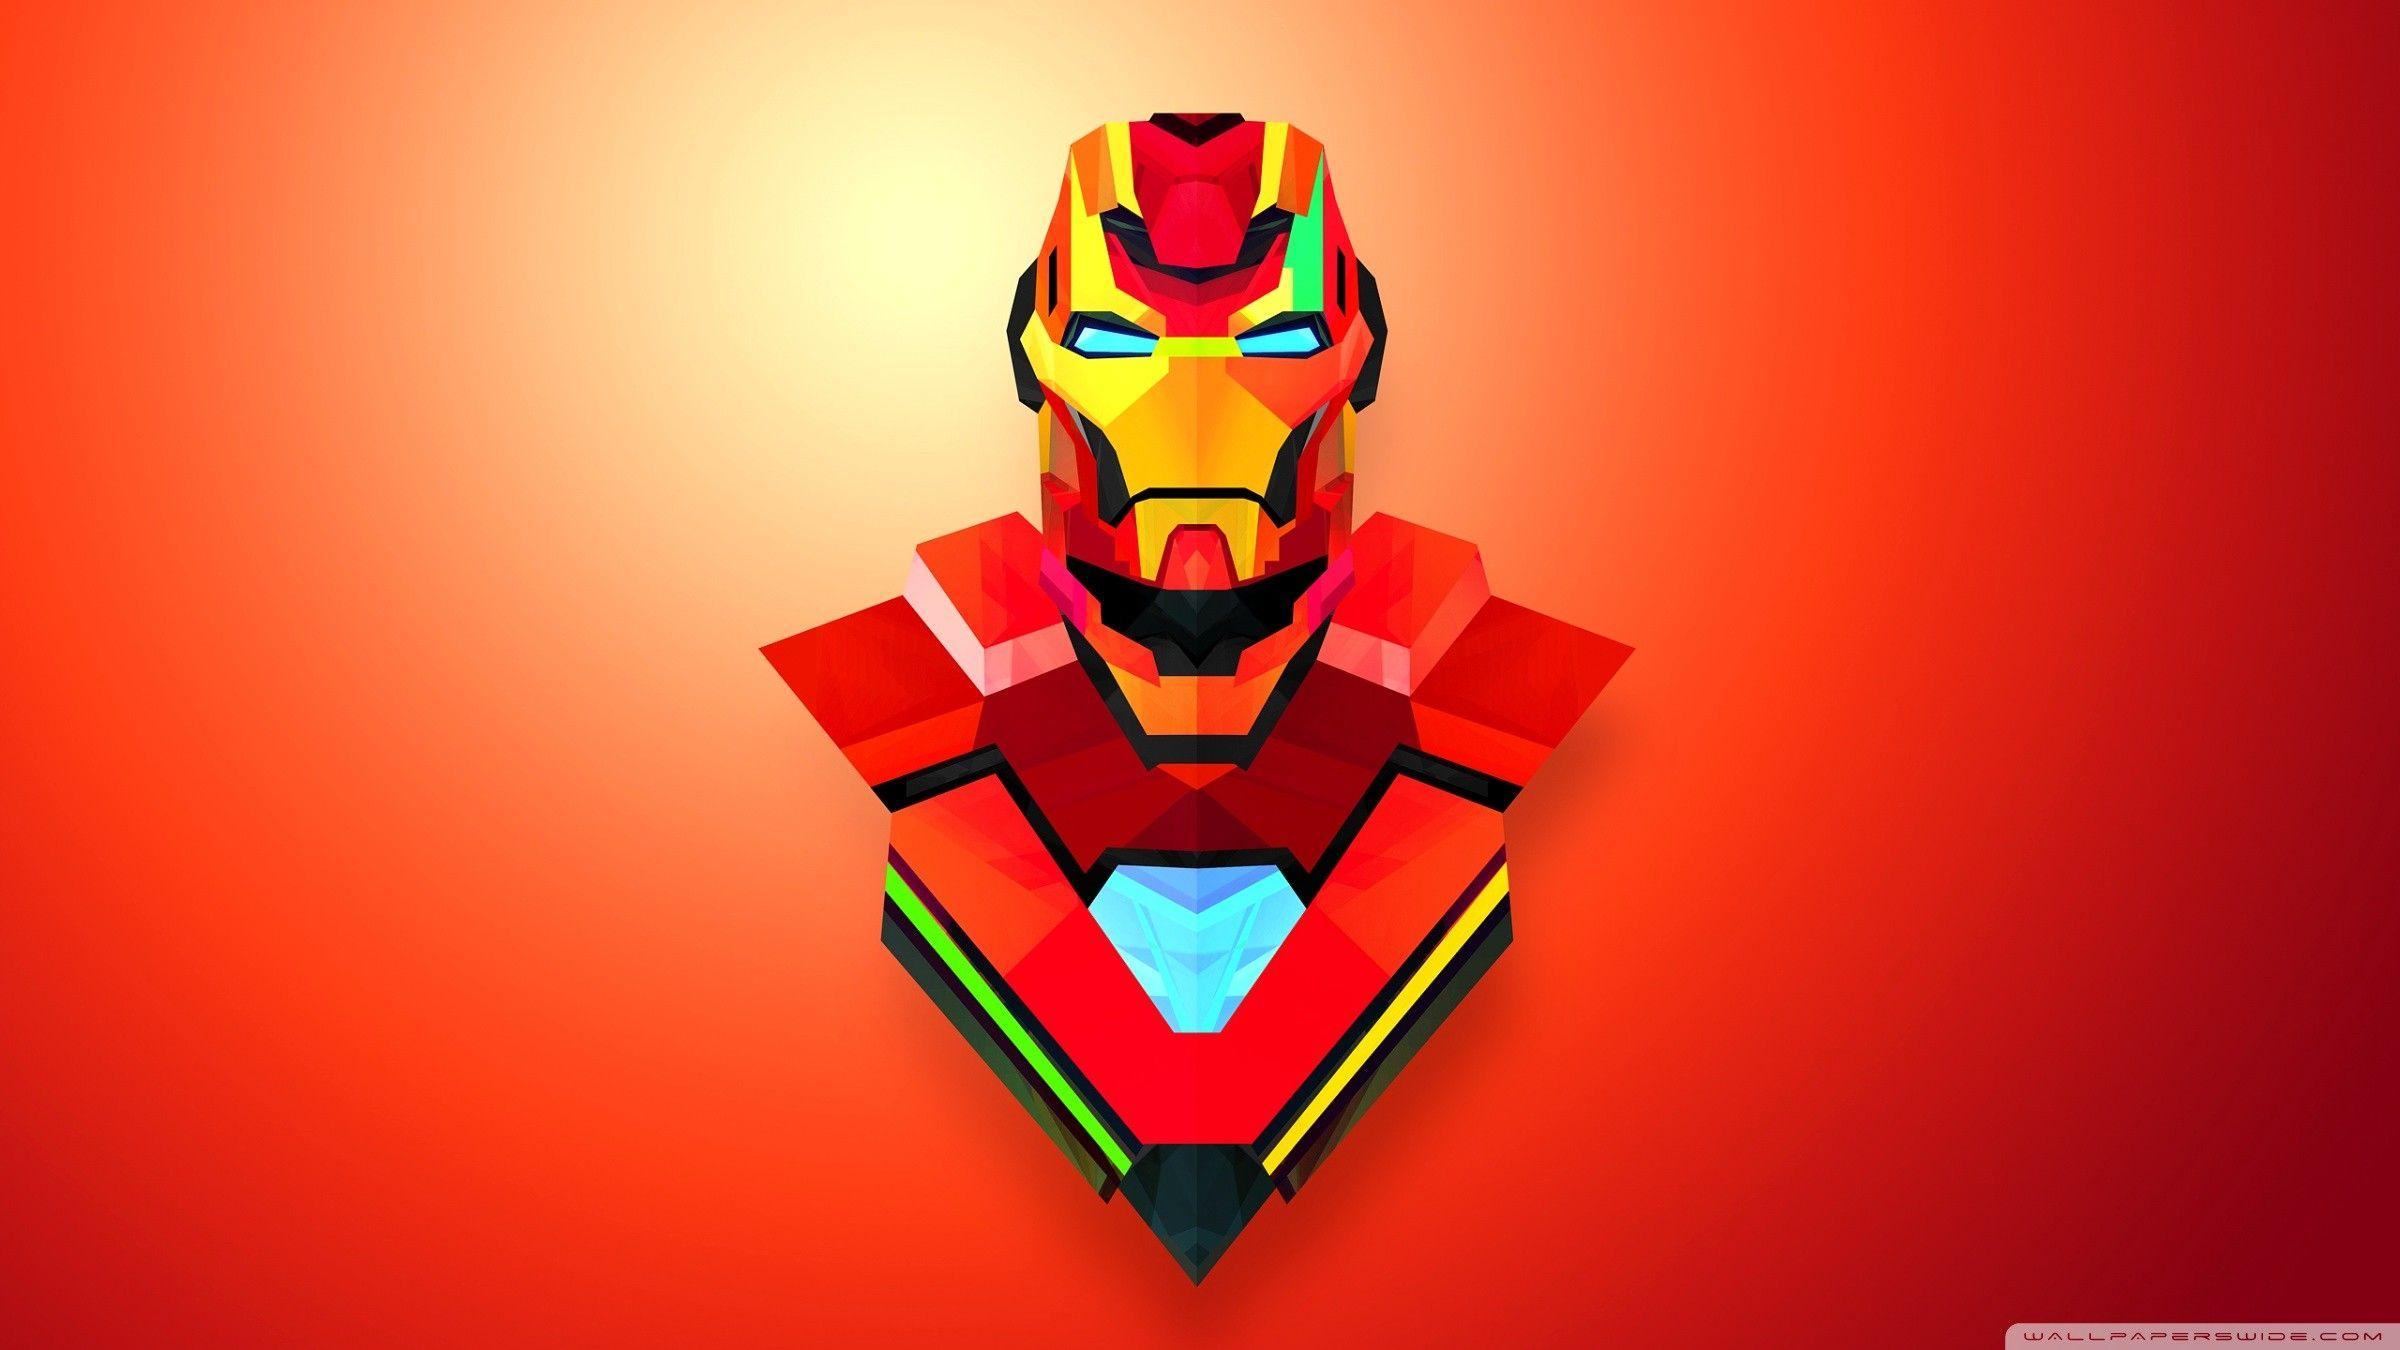 Beautiful Iron Man Wallpapers And WallpapersWide Com HD Desktop